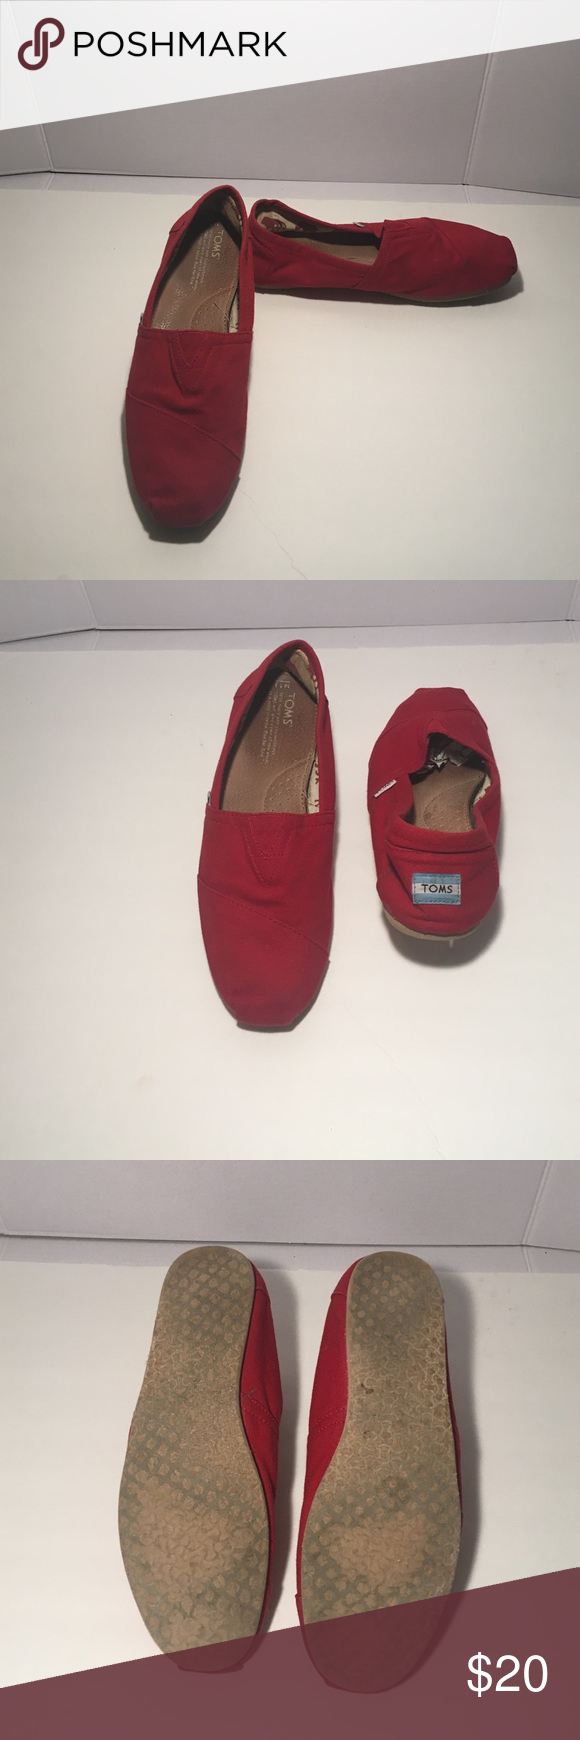 Red Toms Shoes Red Toms Shoes. Good used condition. Size 10 TOMS Shoes Loafers & Slip-Ons